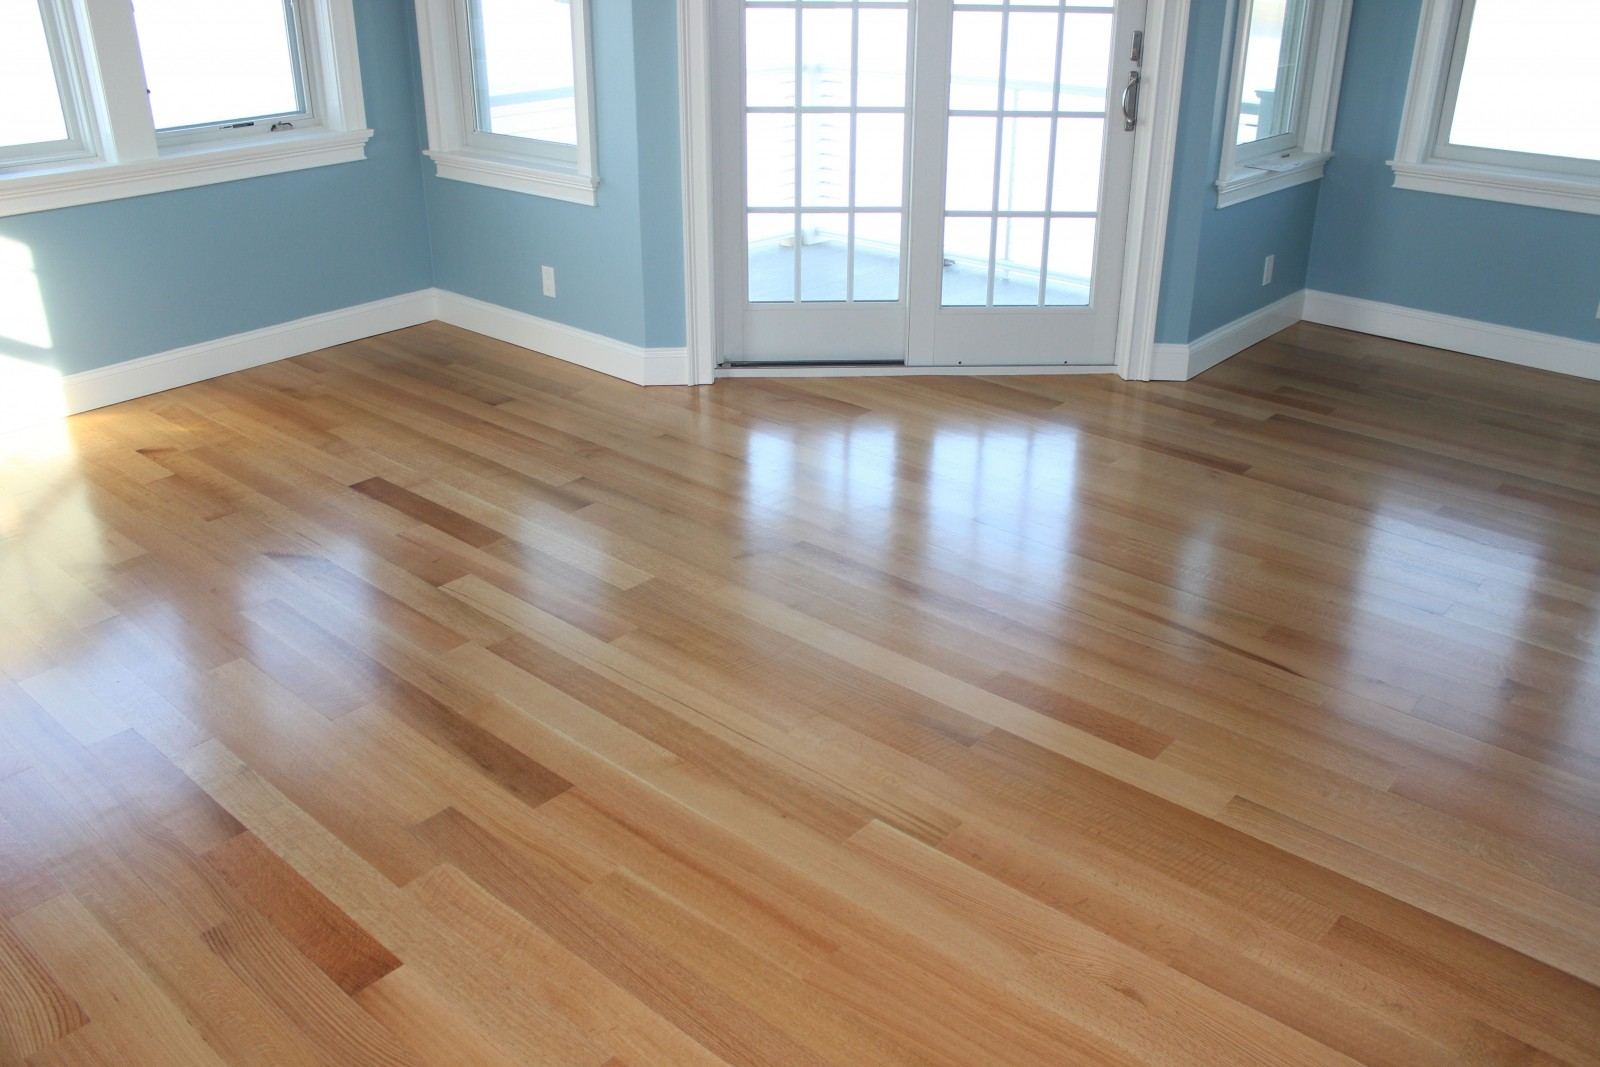 oli-base-hardwood-flooring-finishes